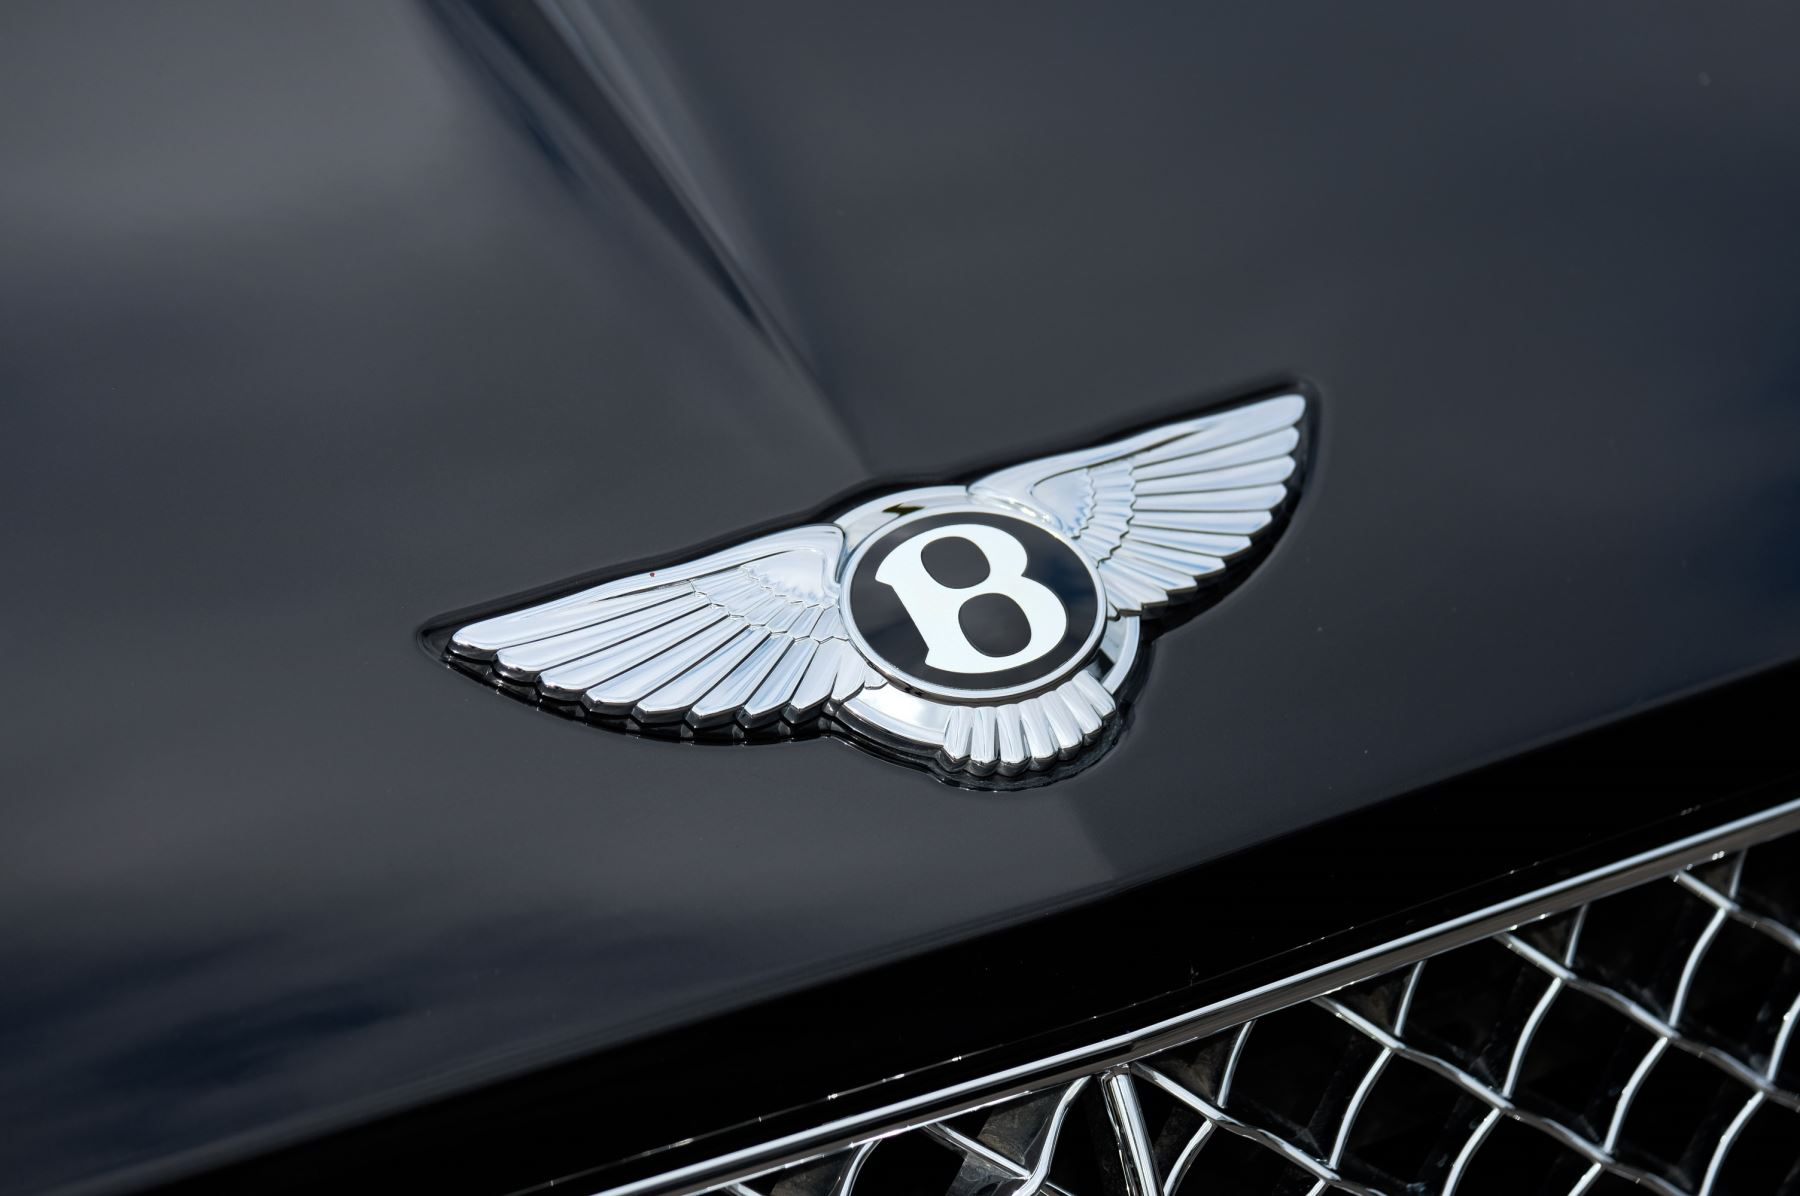 Bentley Continental GT 6.0 W12 1st Edition - Comfort Seating - Touring Specification image 7